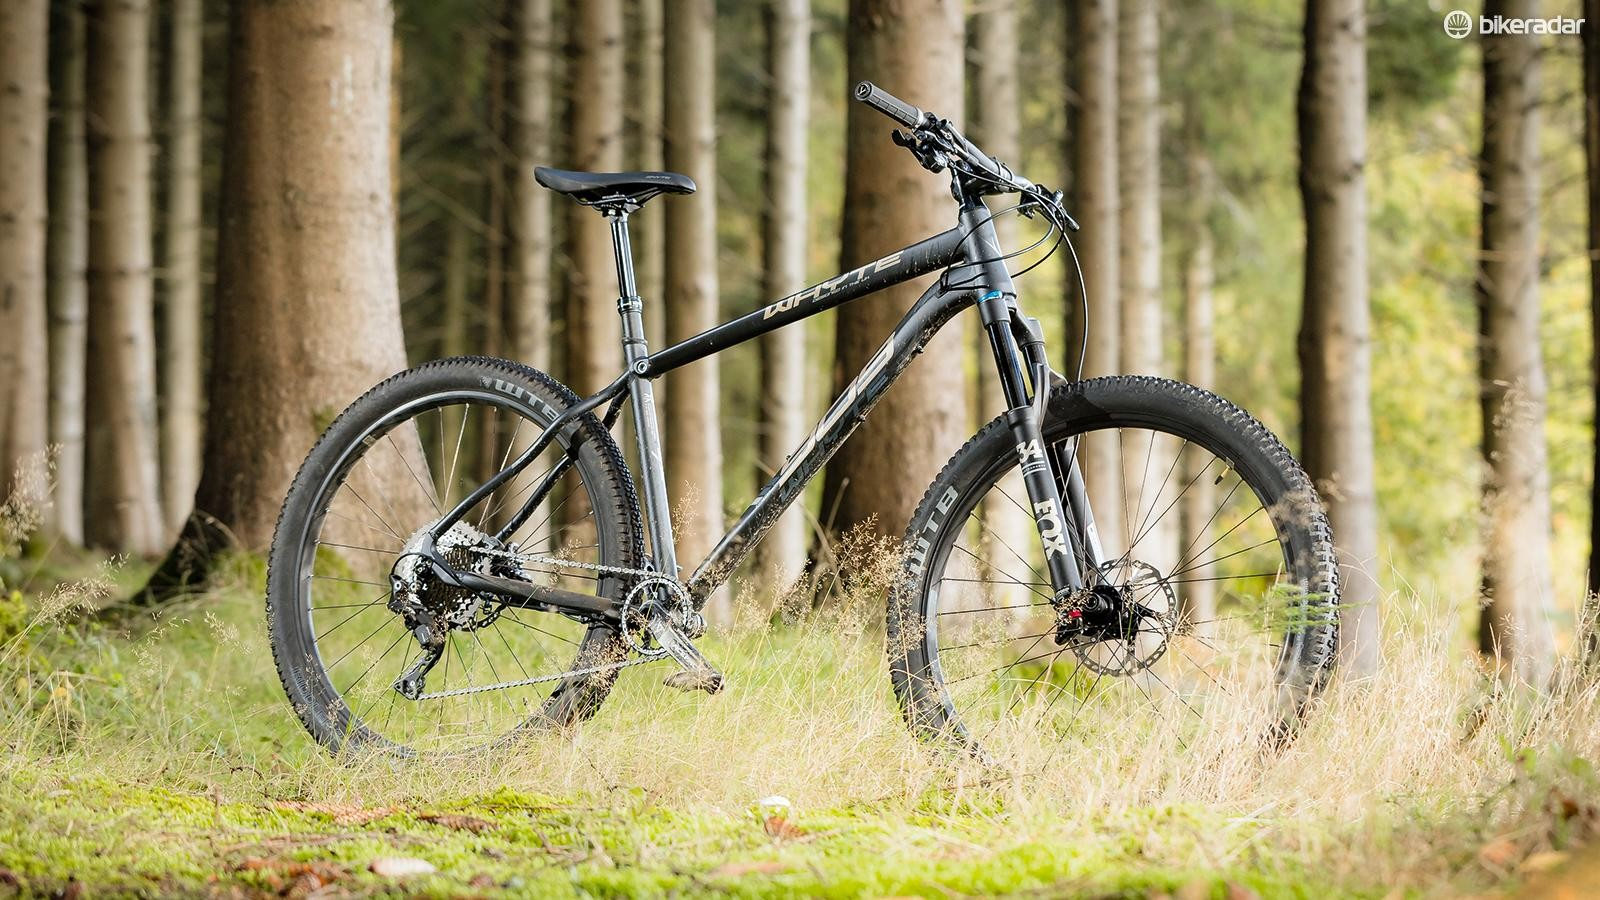 Whyte's 909 hardtail